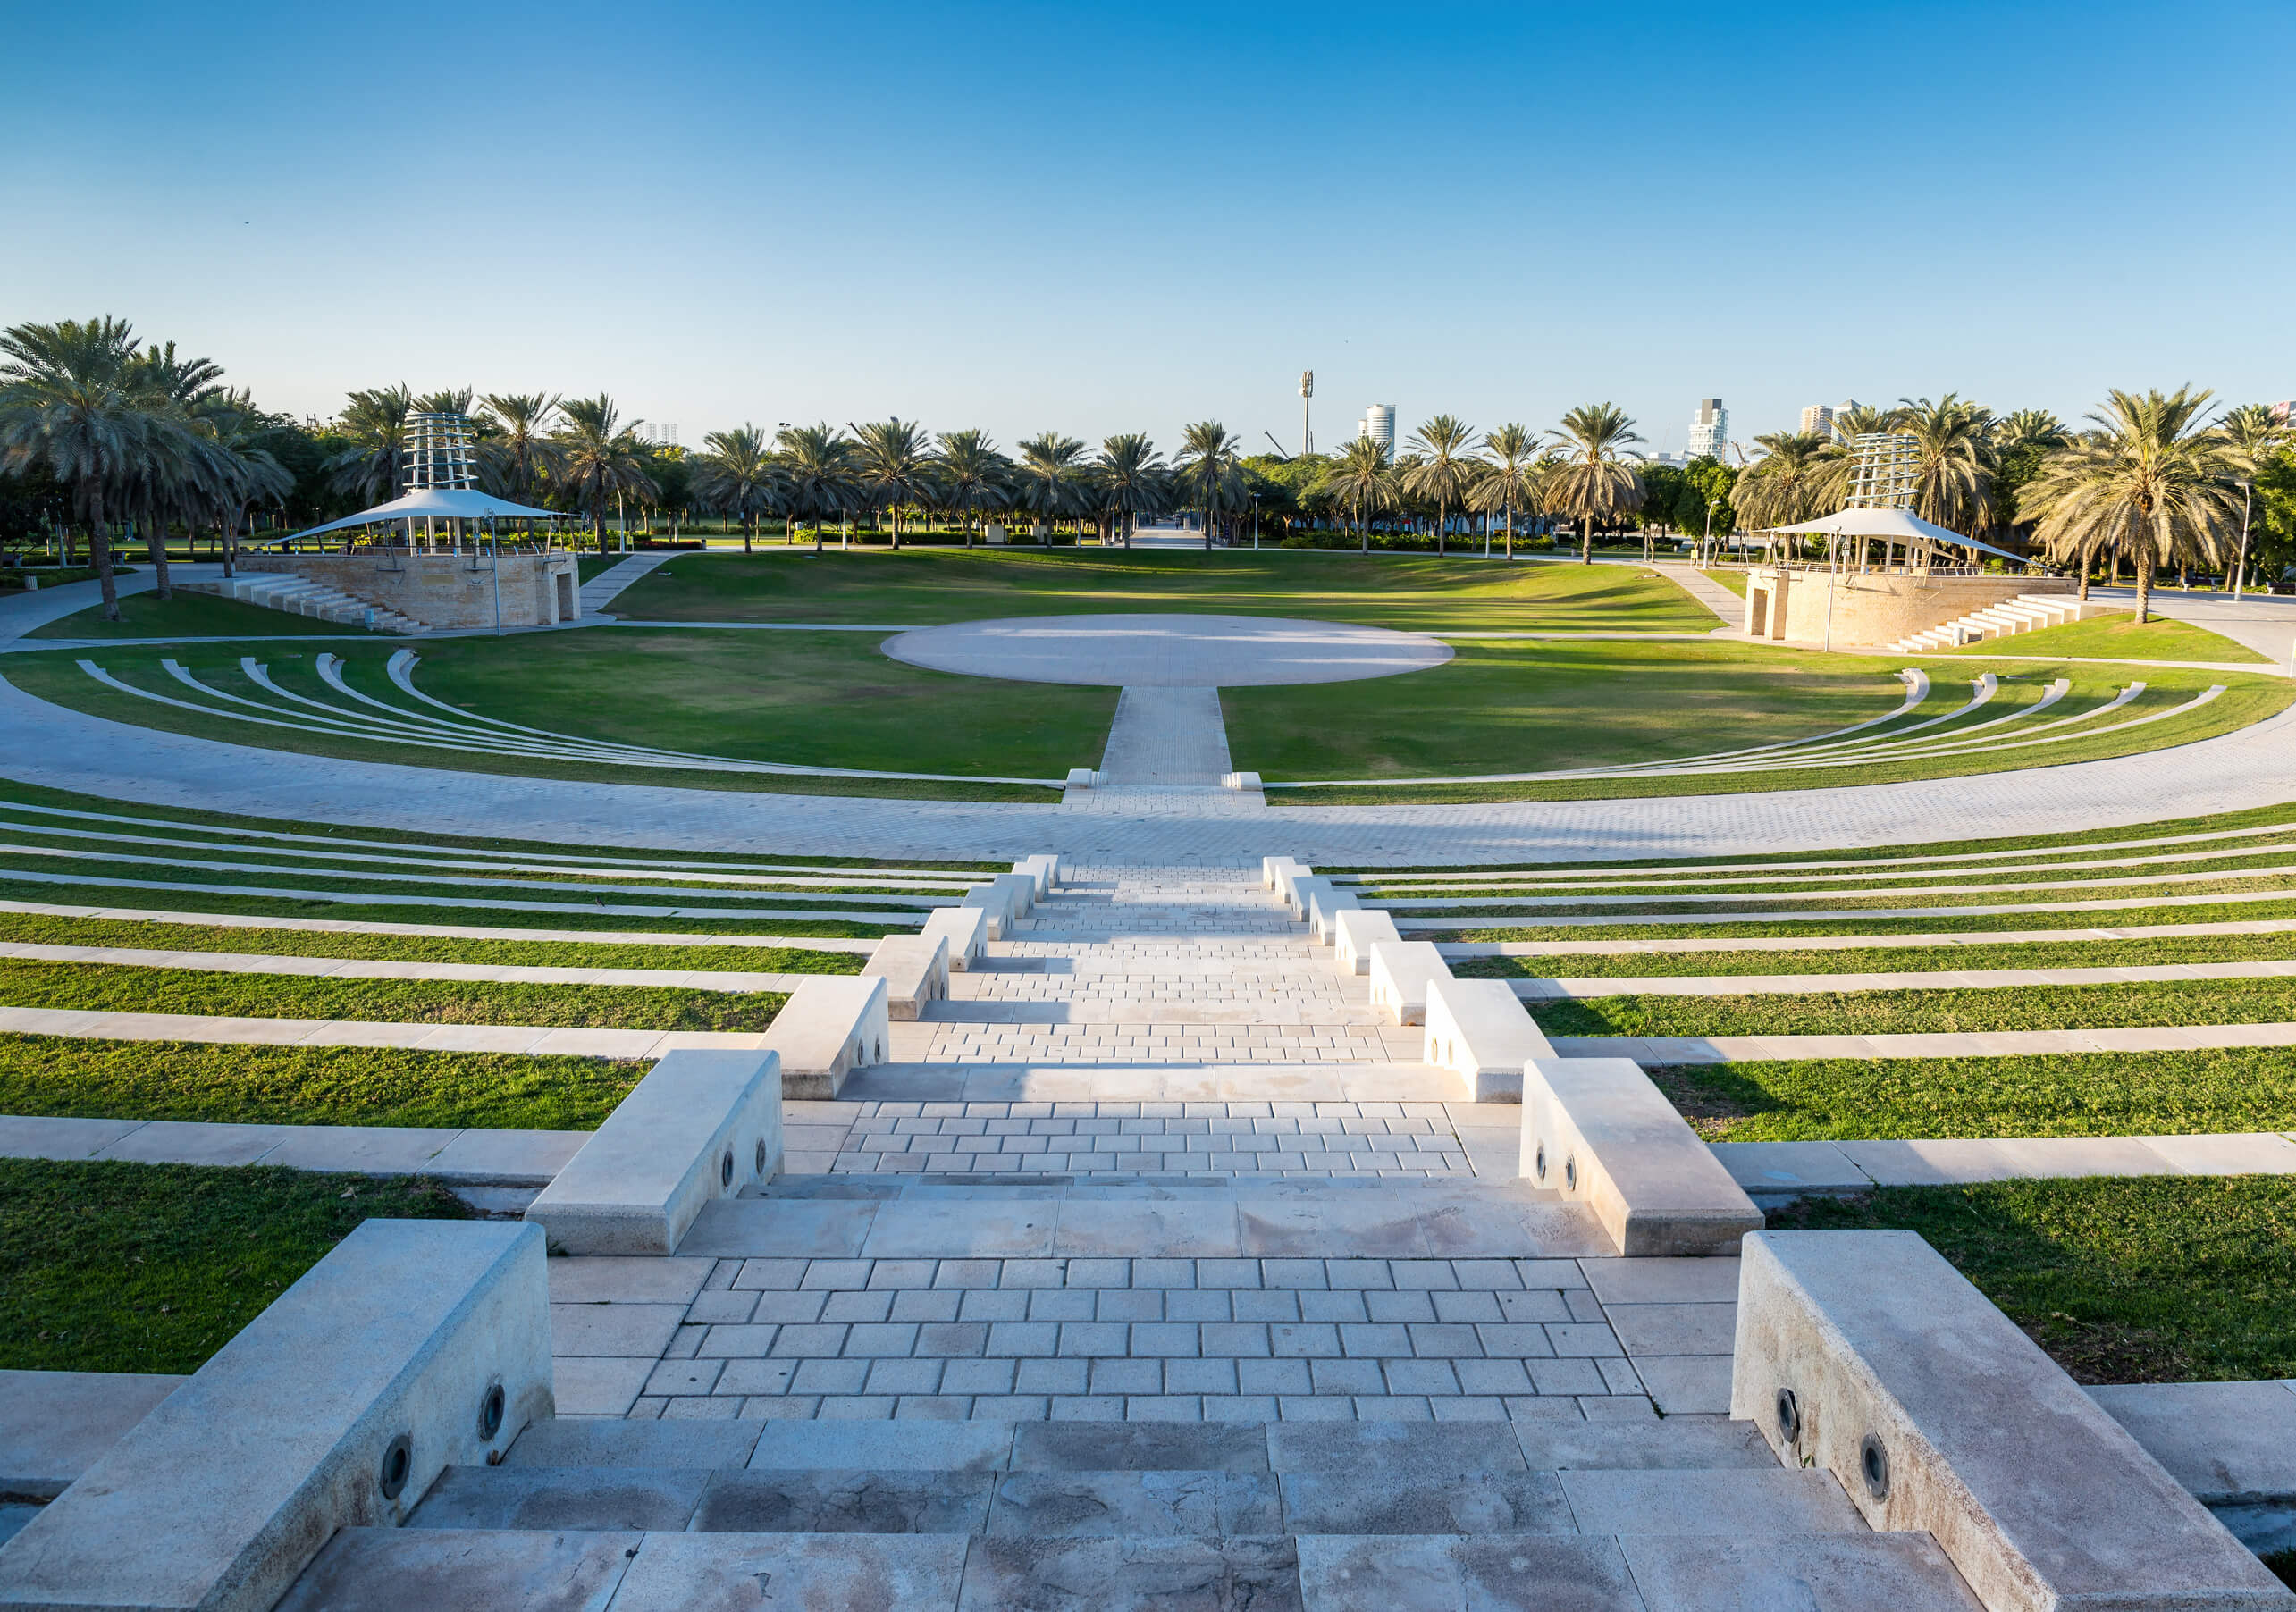 The Best Parks in Dubai